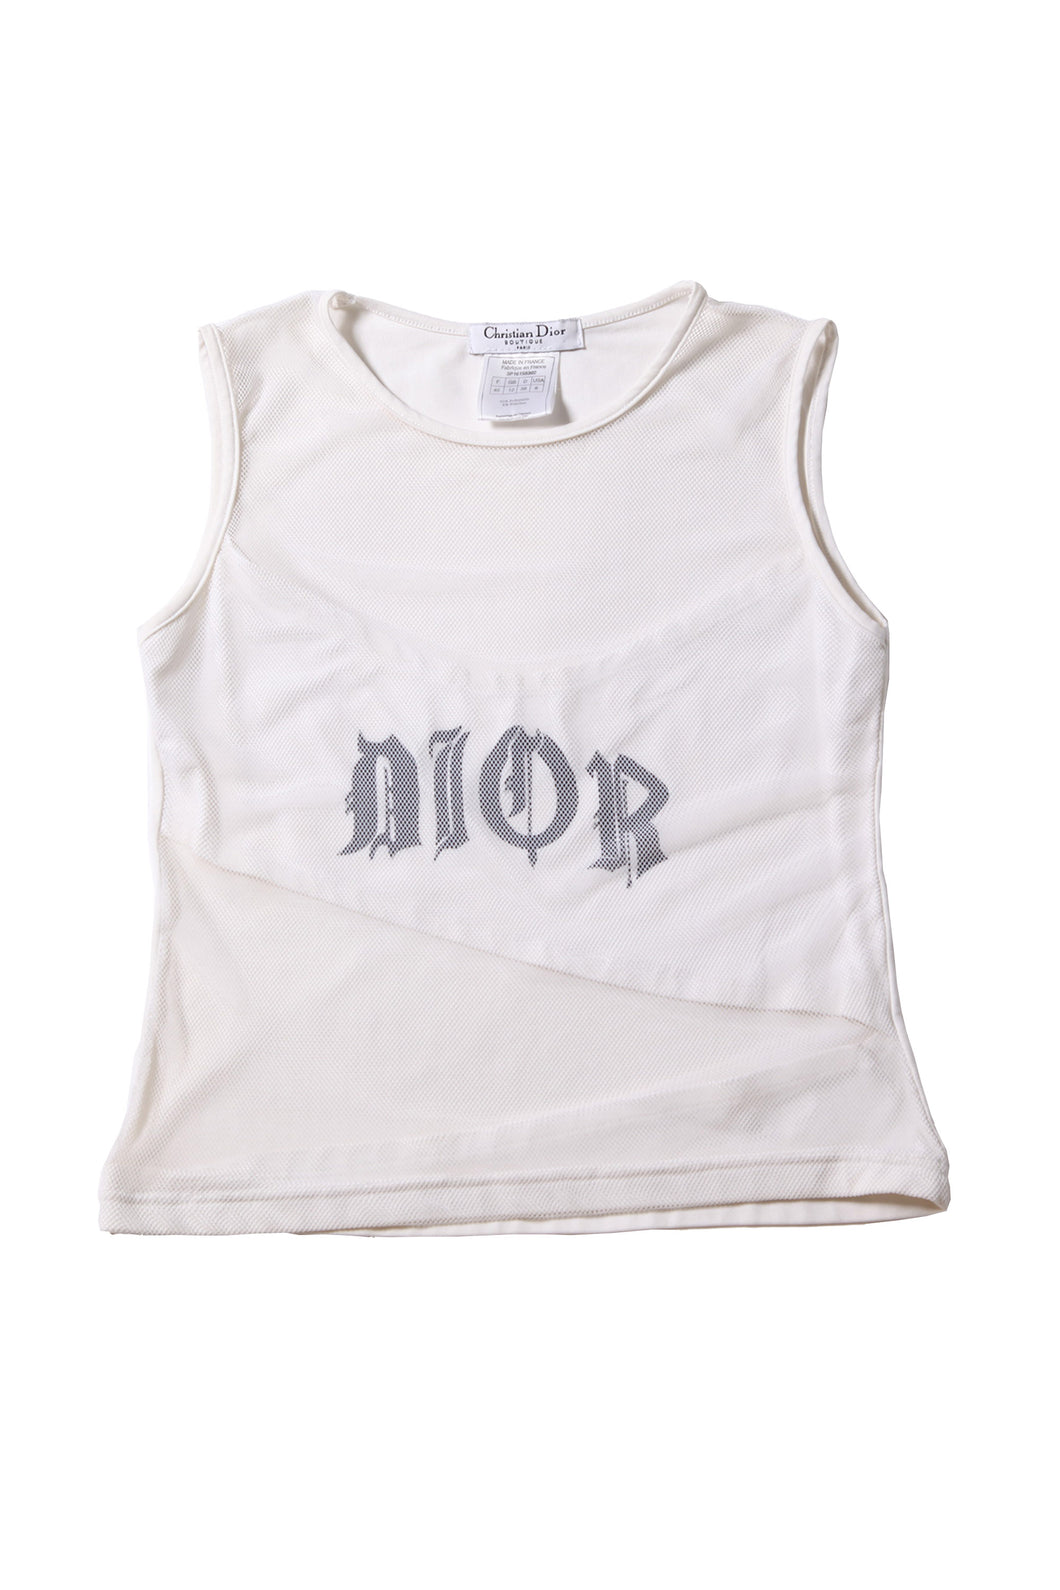 DIOR gothic tank top